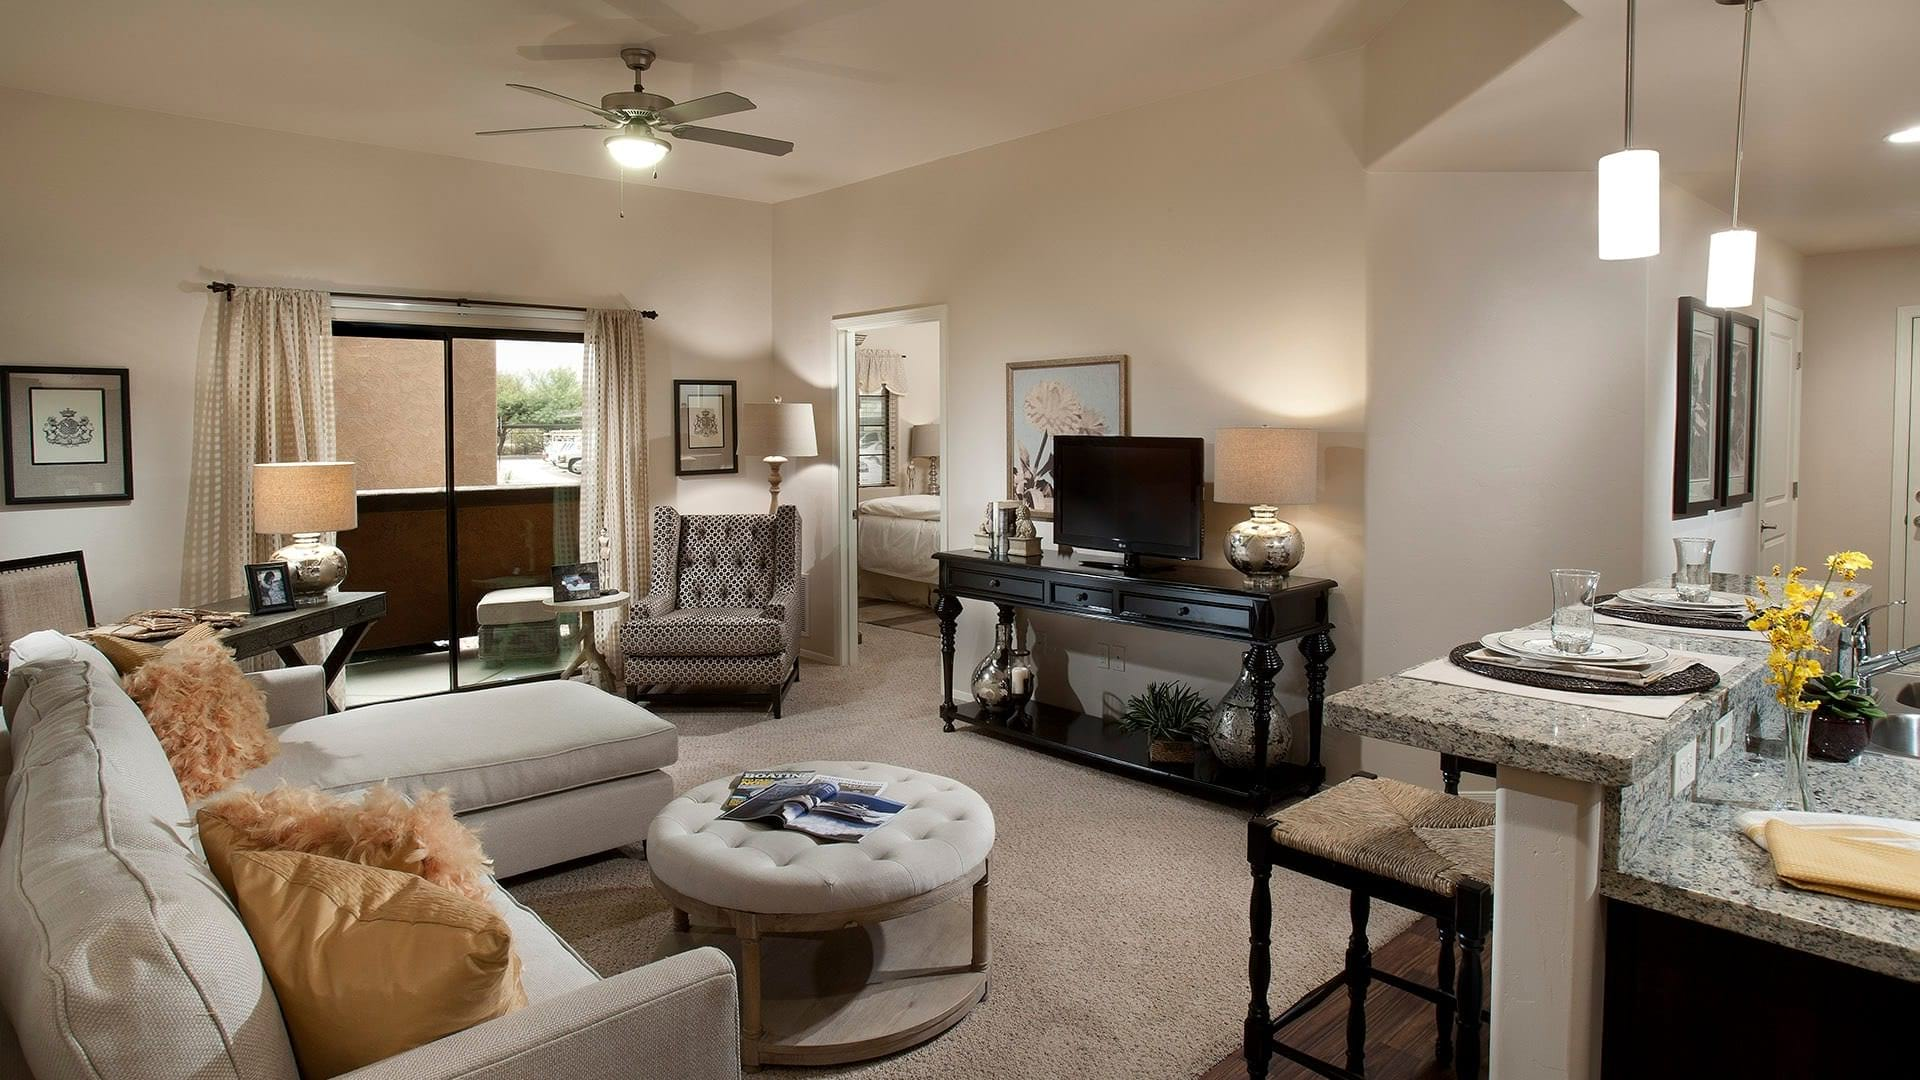 spacious living room with sliding glass door access to private balcony